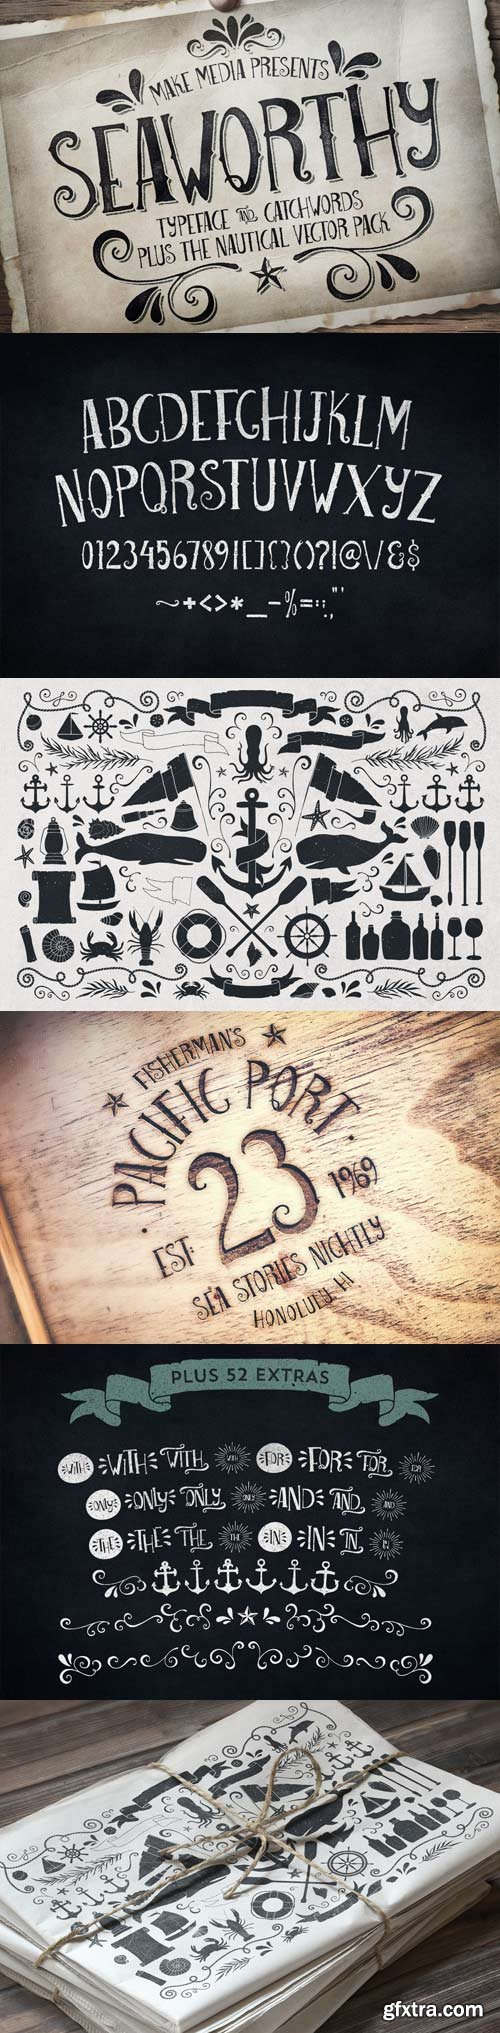 Seaworthy Font Family - 2 Fonts for $25